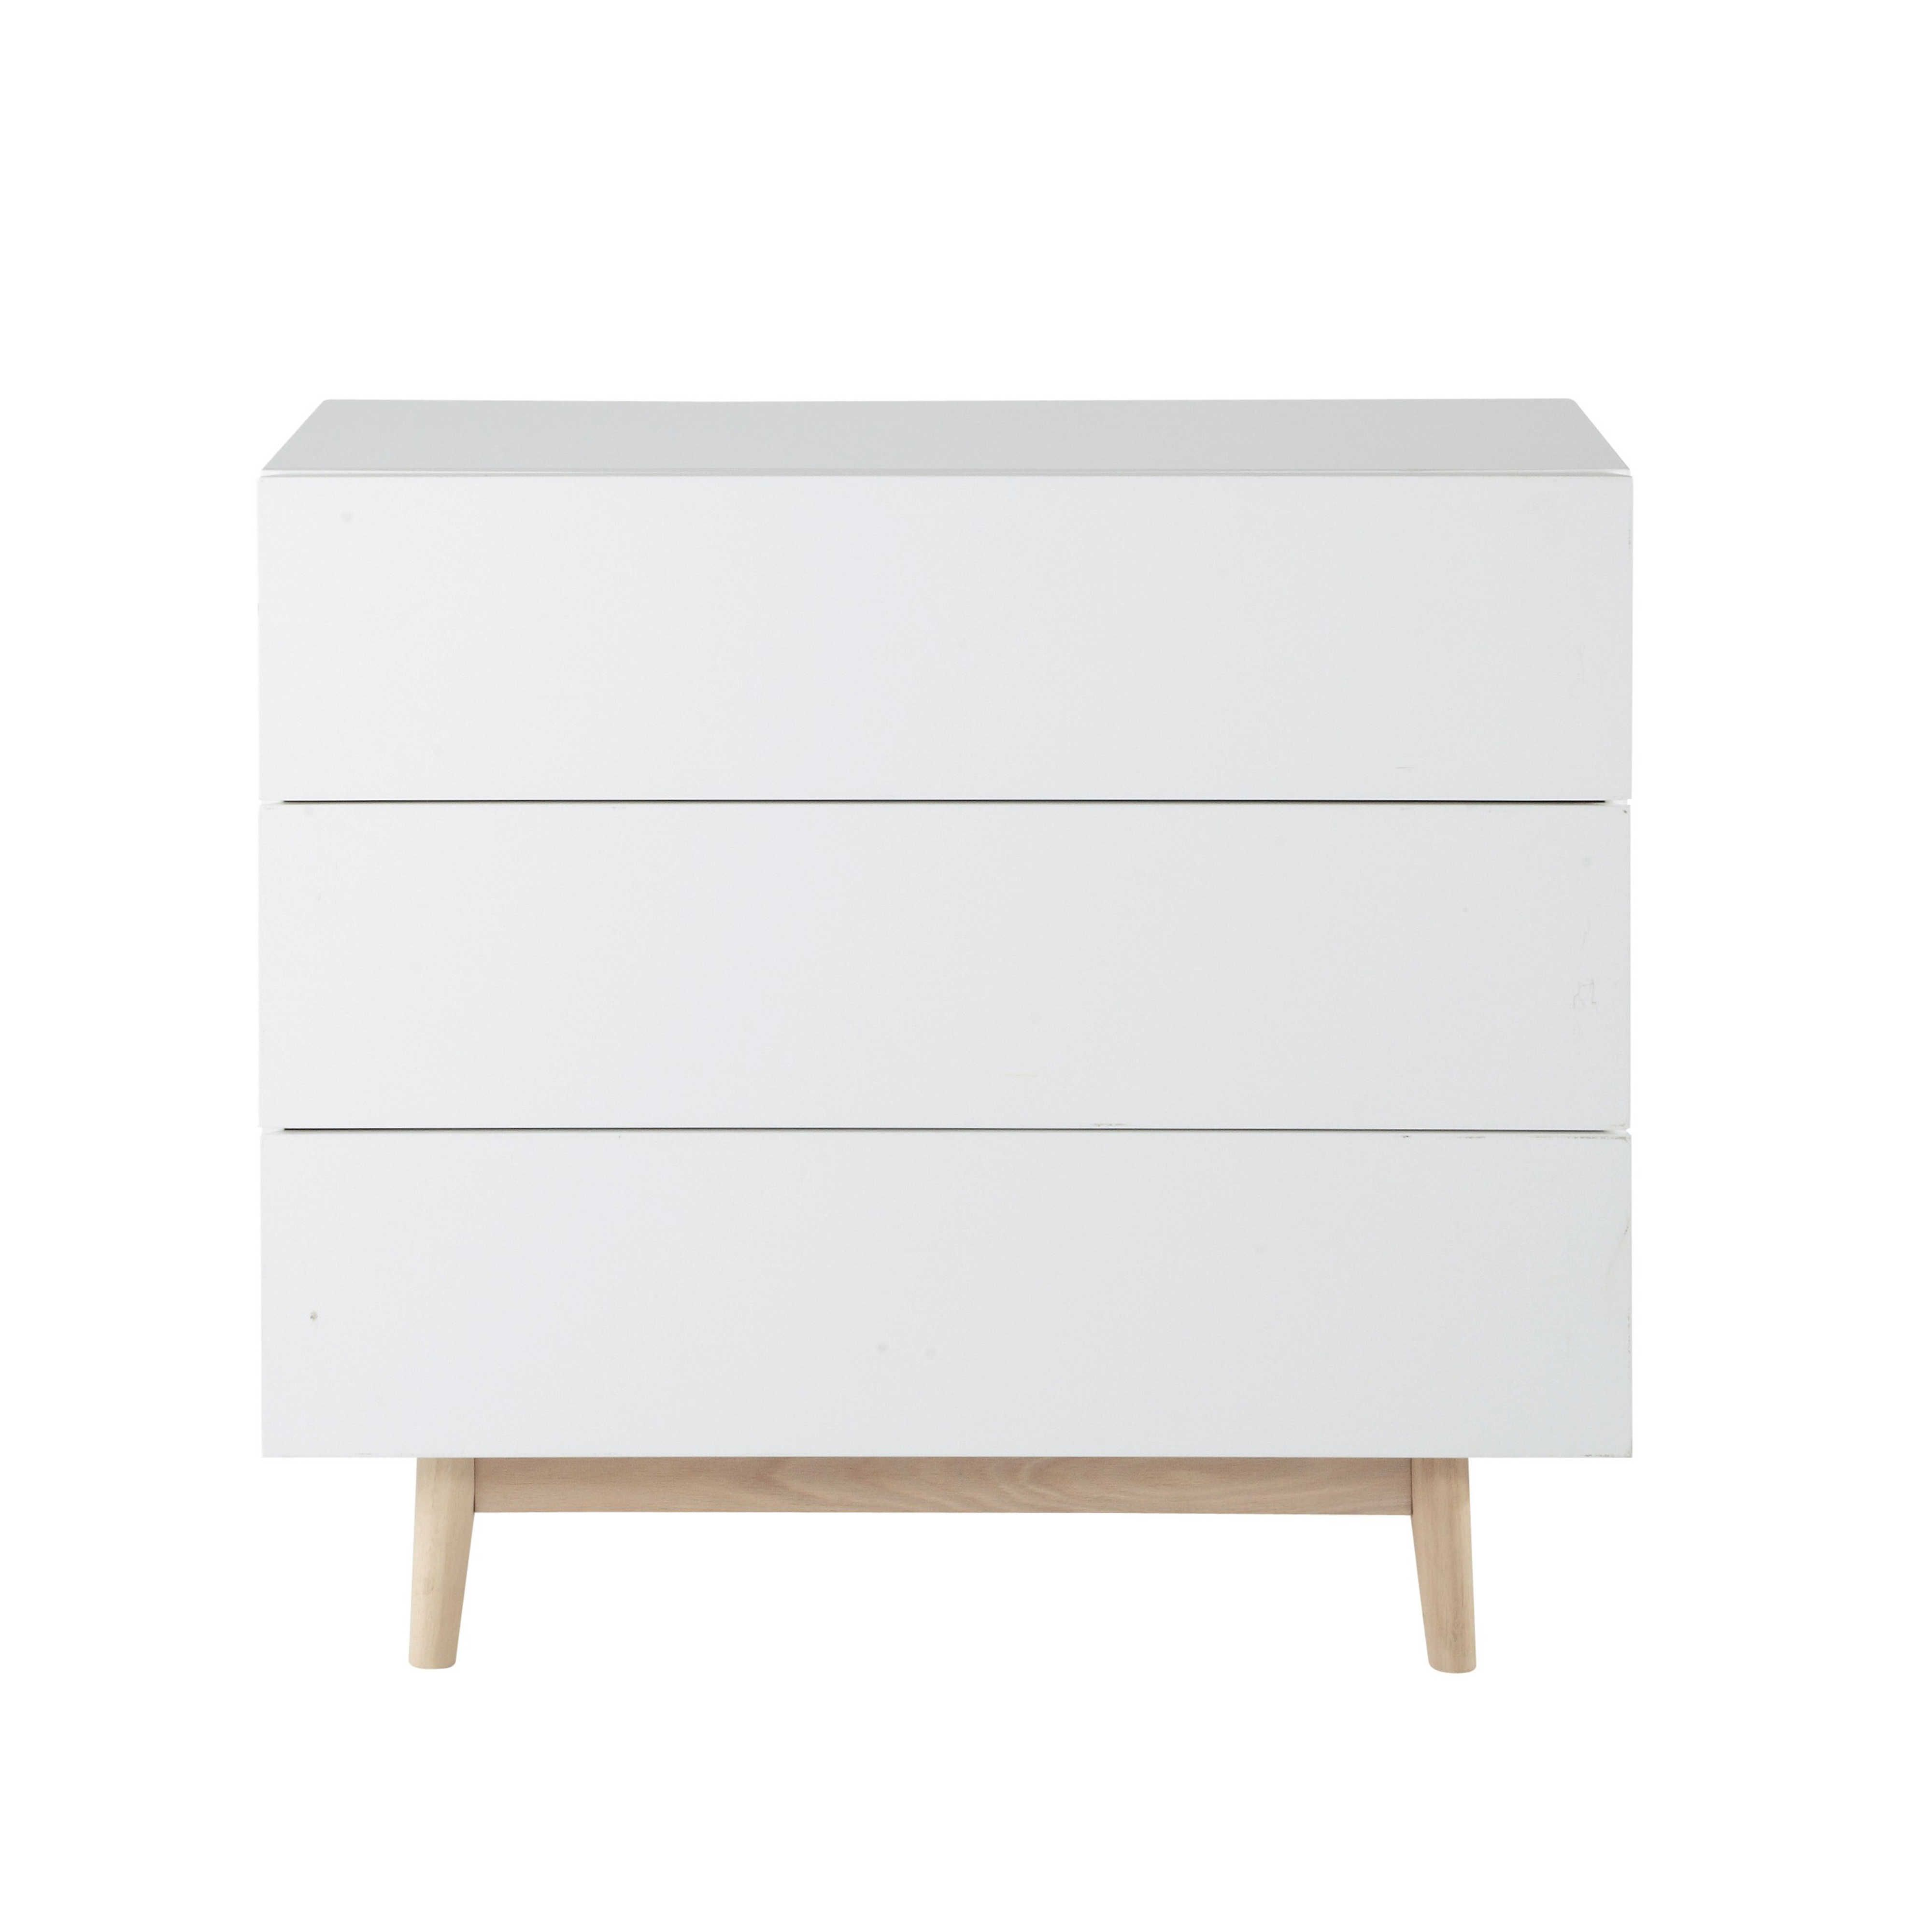 commode vintage blanche ambiance scandinave bois blanc et maison du monde. Black Bedroom Furniture Sets. Home Design Ideas